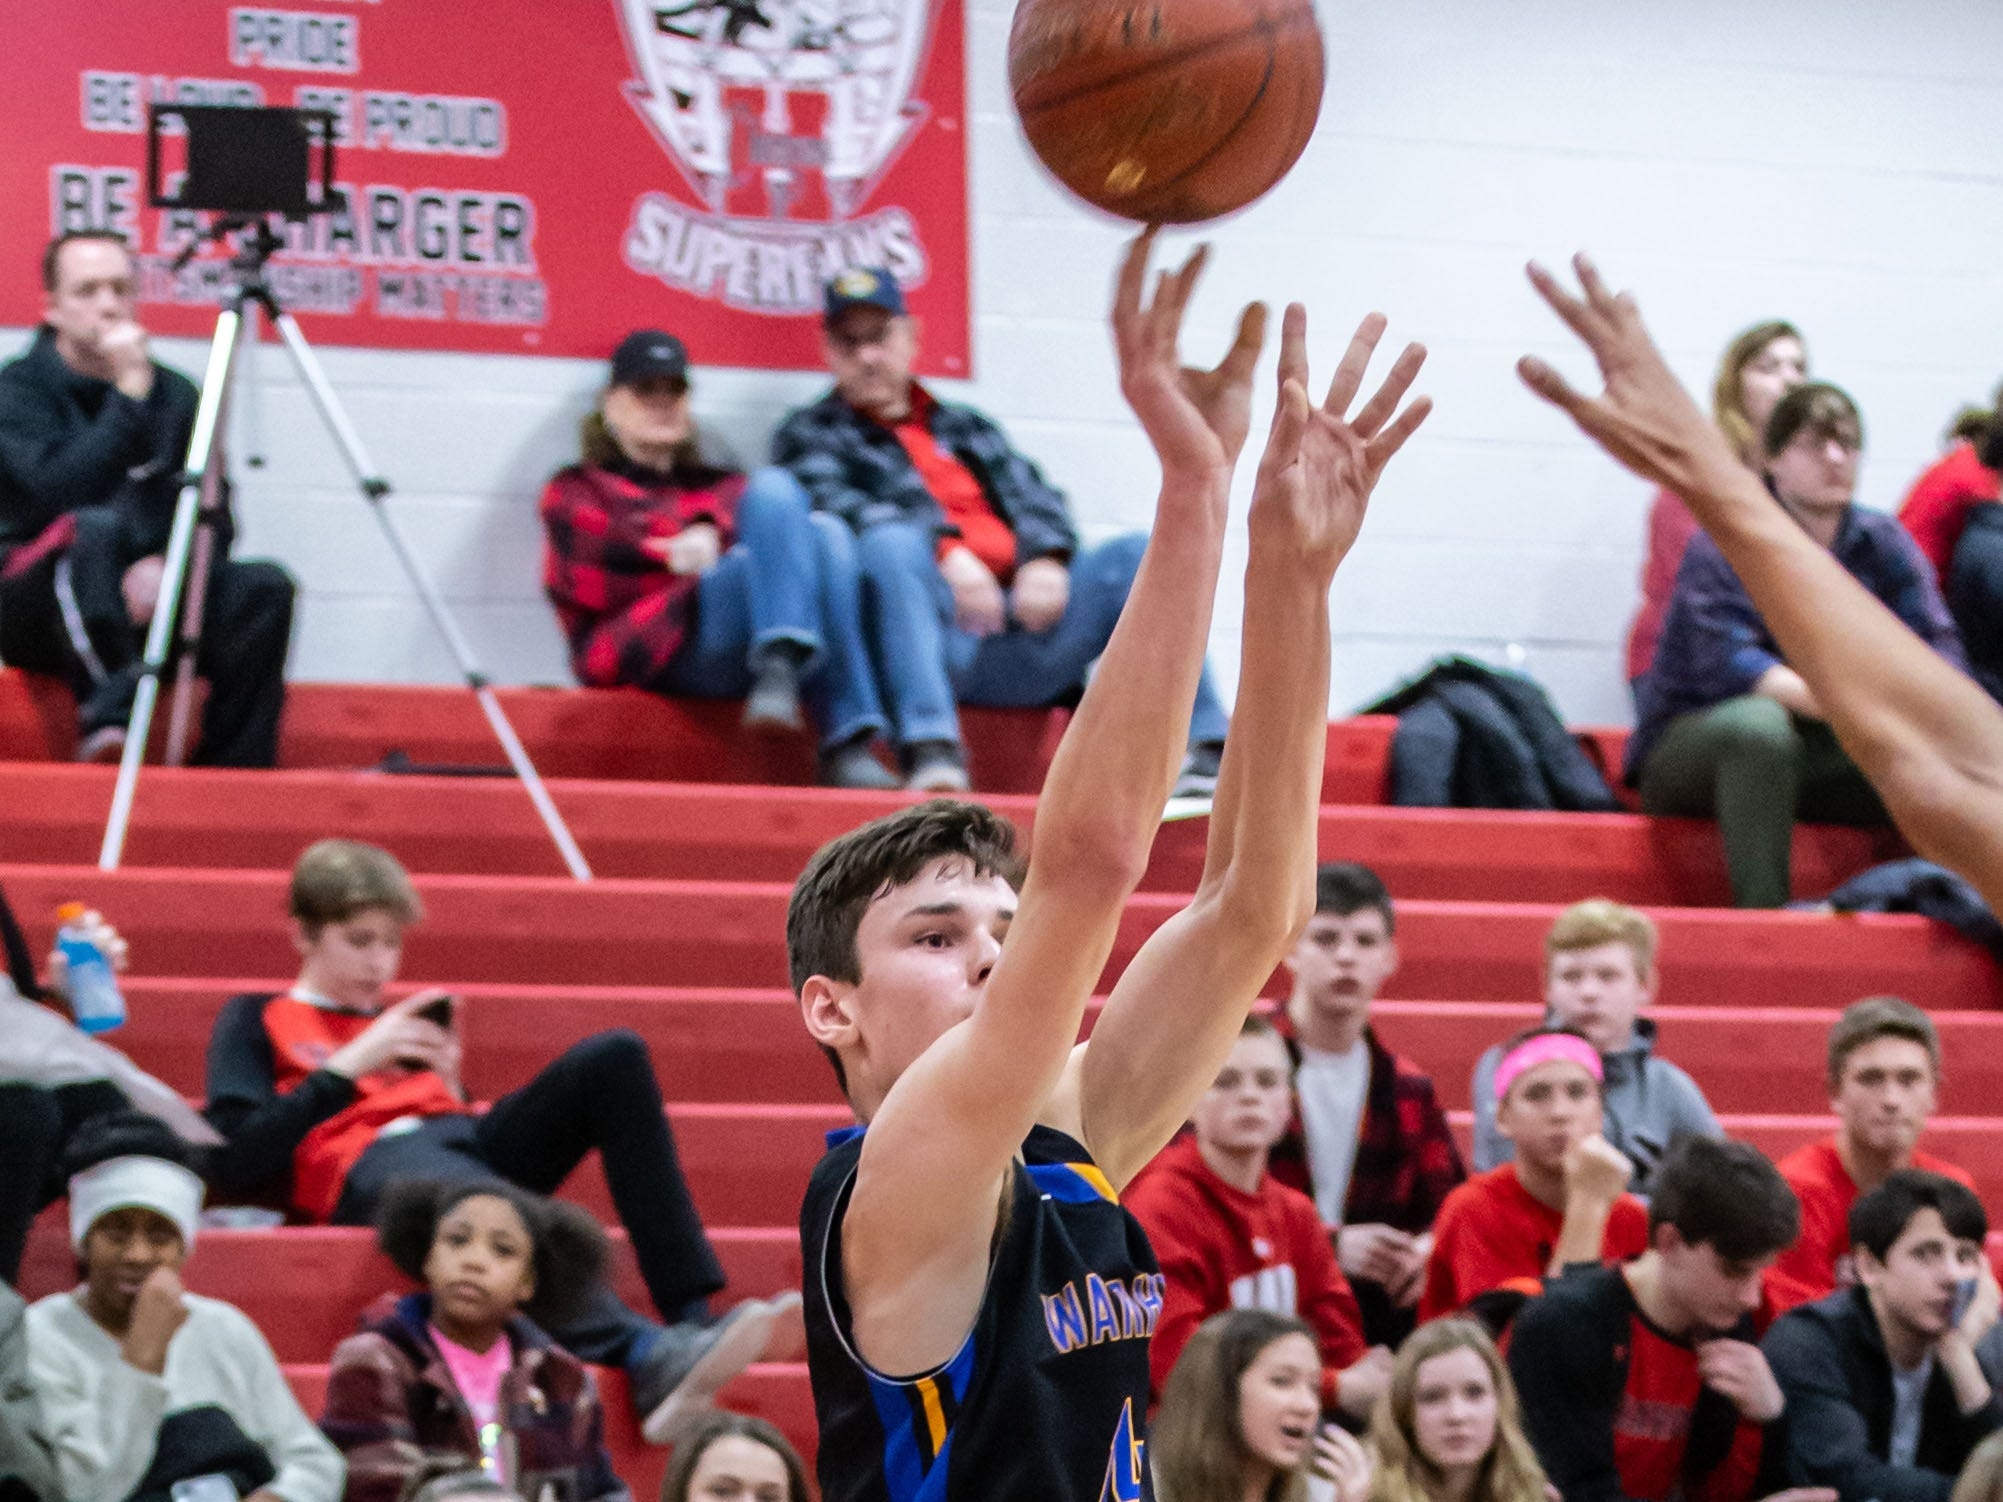 Germantown's Michael Doran (14) elevates for a shot during the game at Hamilton on Thursday, Feb. 14, 2019.